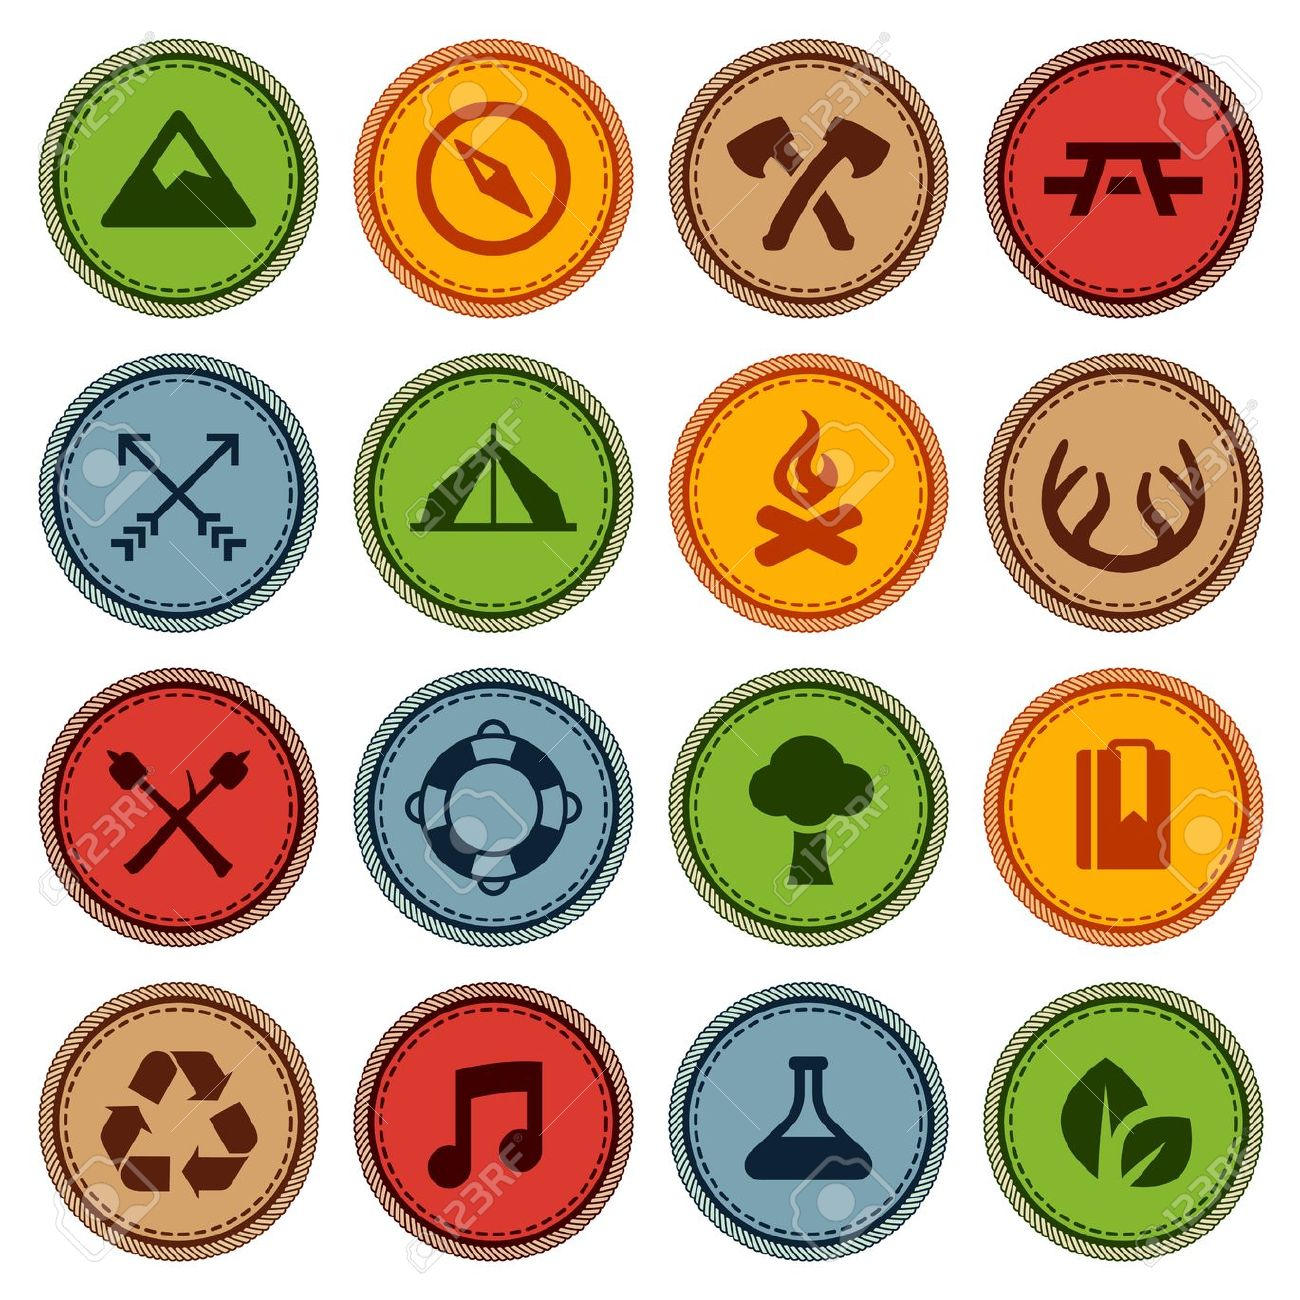 Boy scout merit badge clipart.